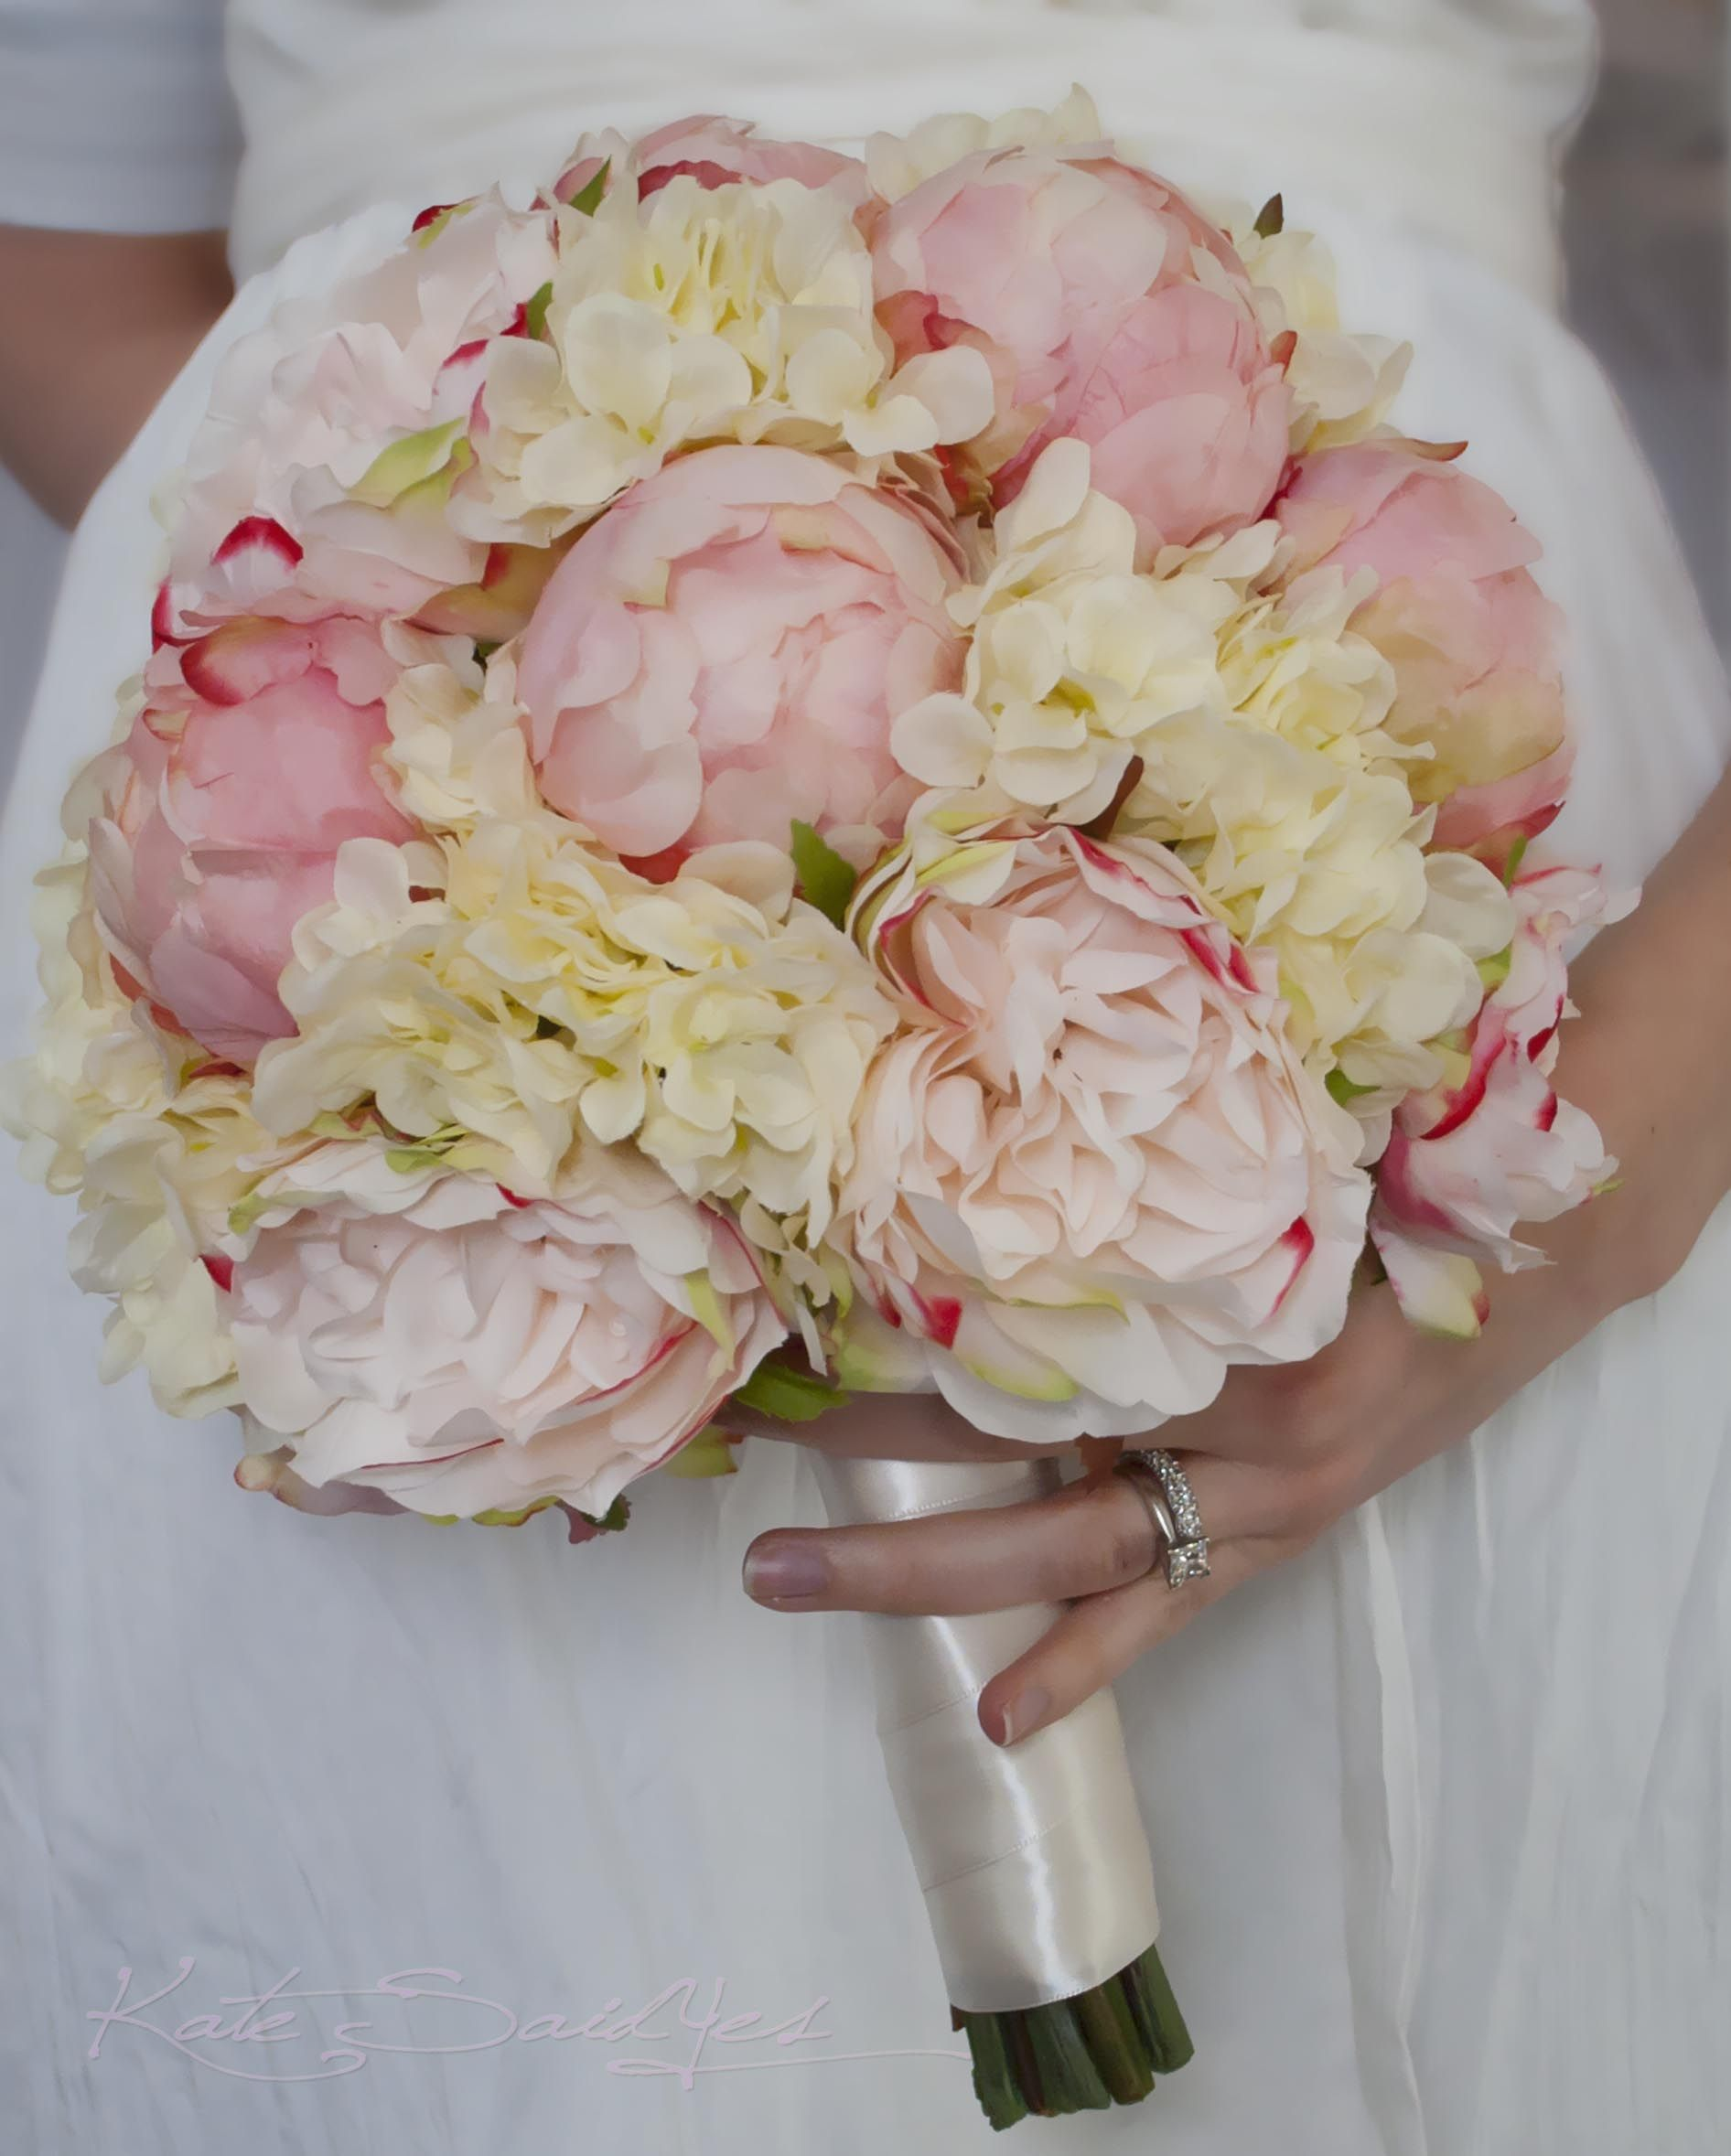 rose wedding bouquet blush pink peonies and garden - Garden Rose And Peony